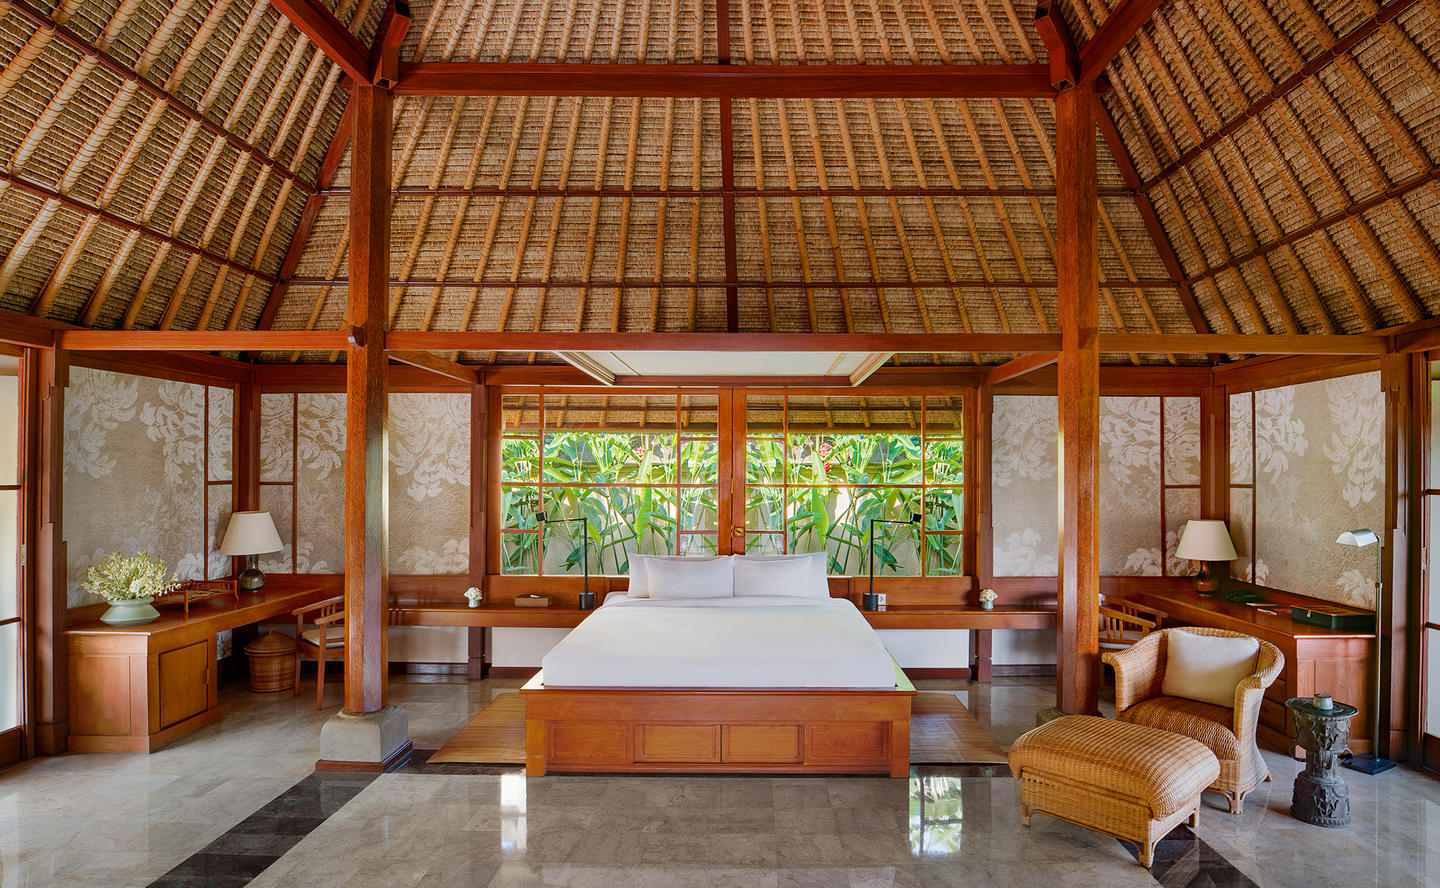 Bedroom, Village Suite - Amandari, Bali